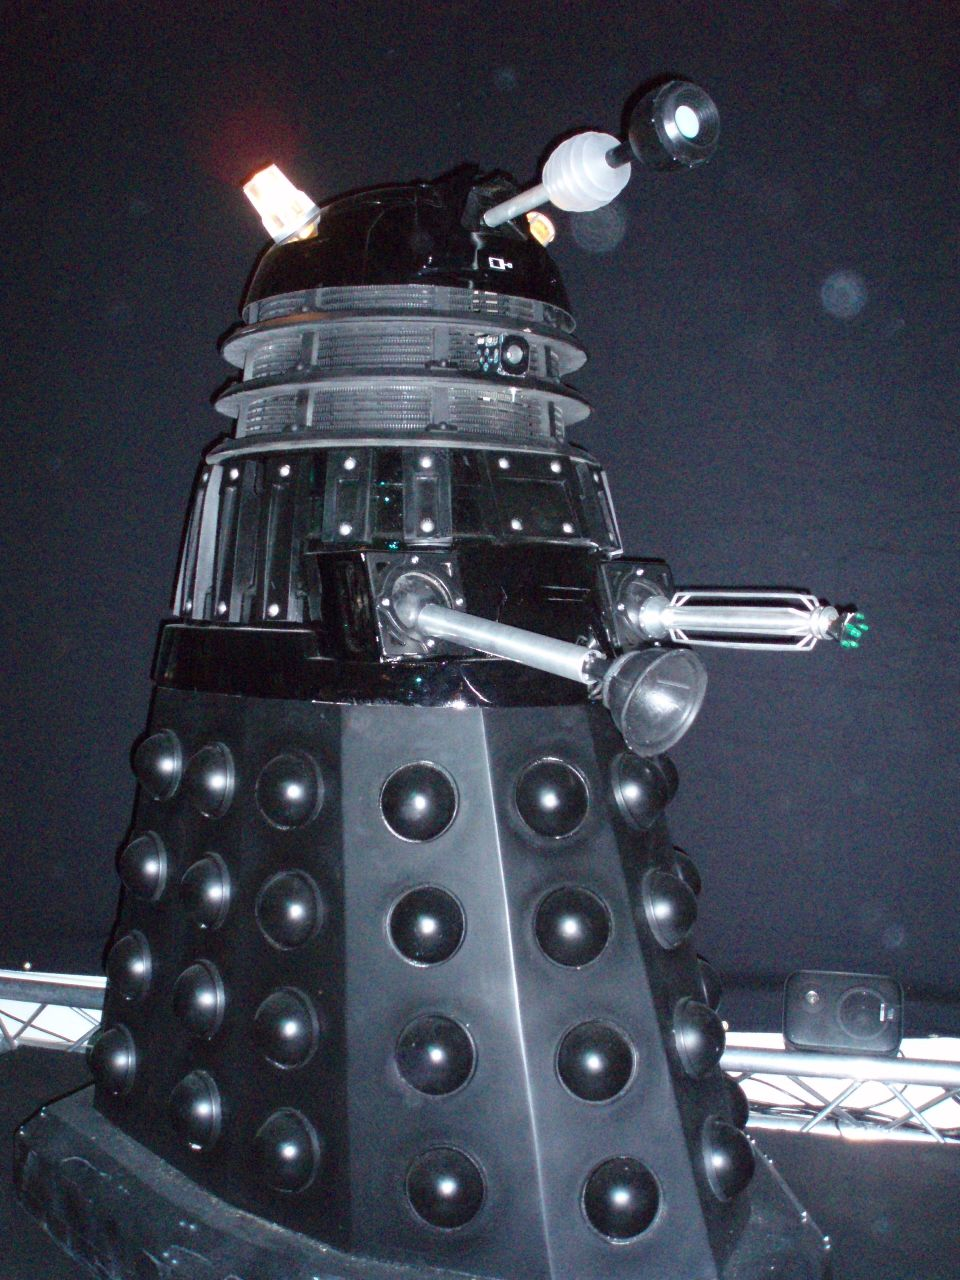 Dalek TPE-SEC2 at the National Space Centre, Leicester